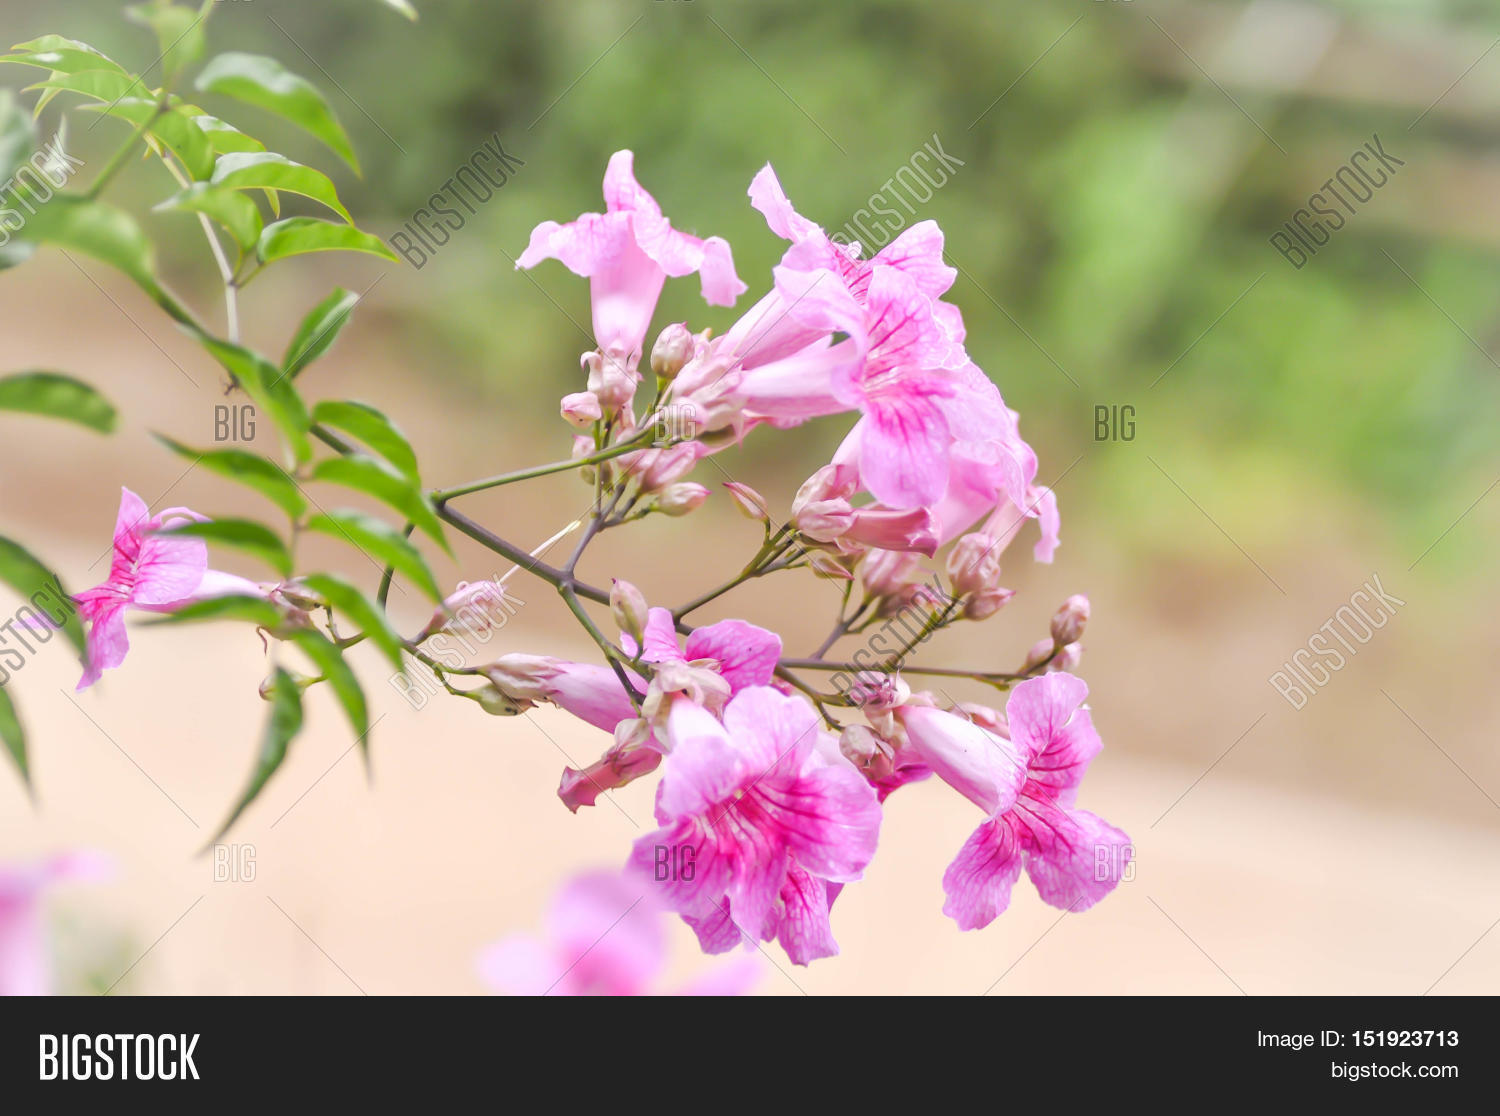 Zimbabwe creeper pink trumpet vine image photo bigstock zimbabwe creeper pink trumpet vine or trumpet vinepodranea ricasoliana flower mightylinksfo Image collections